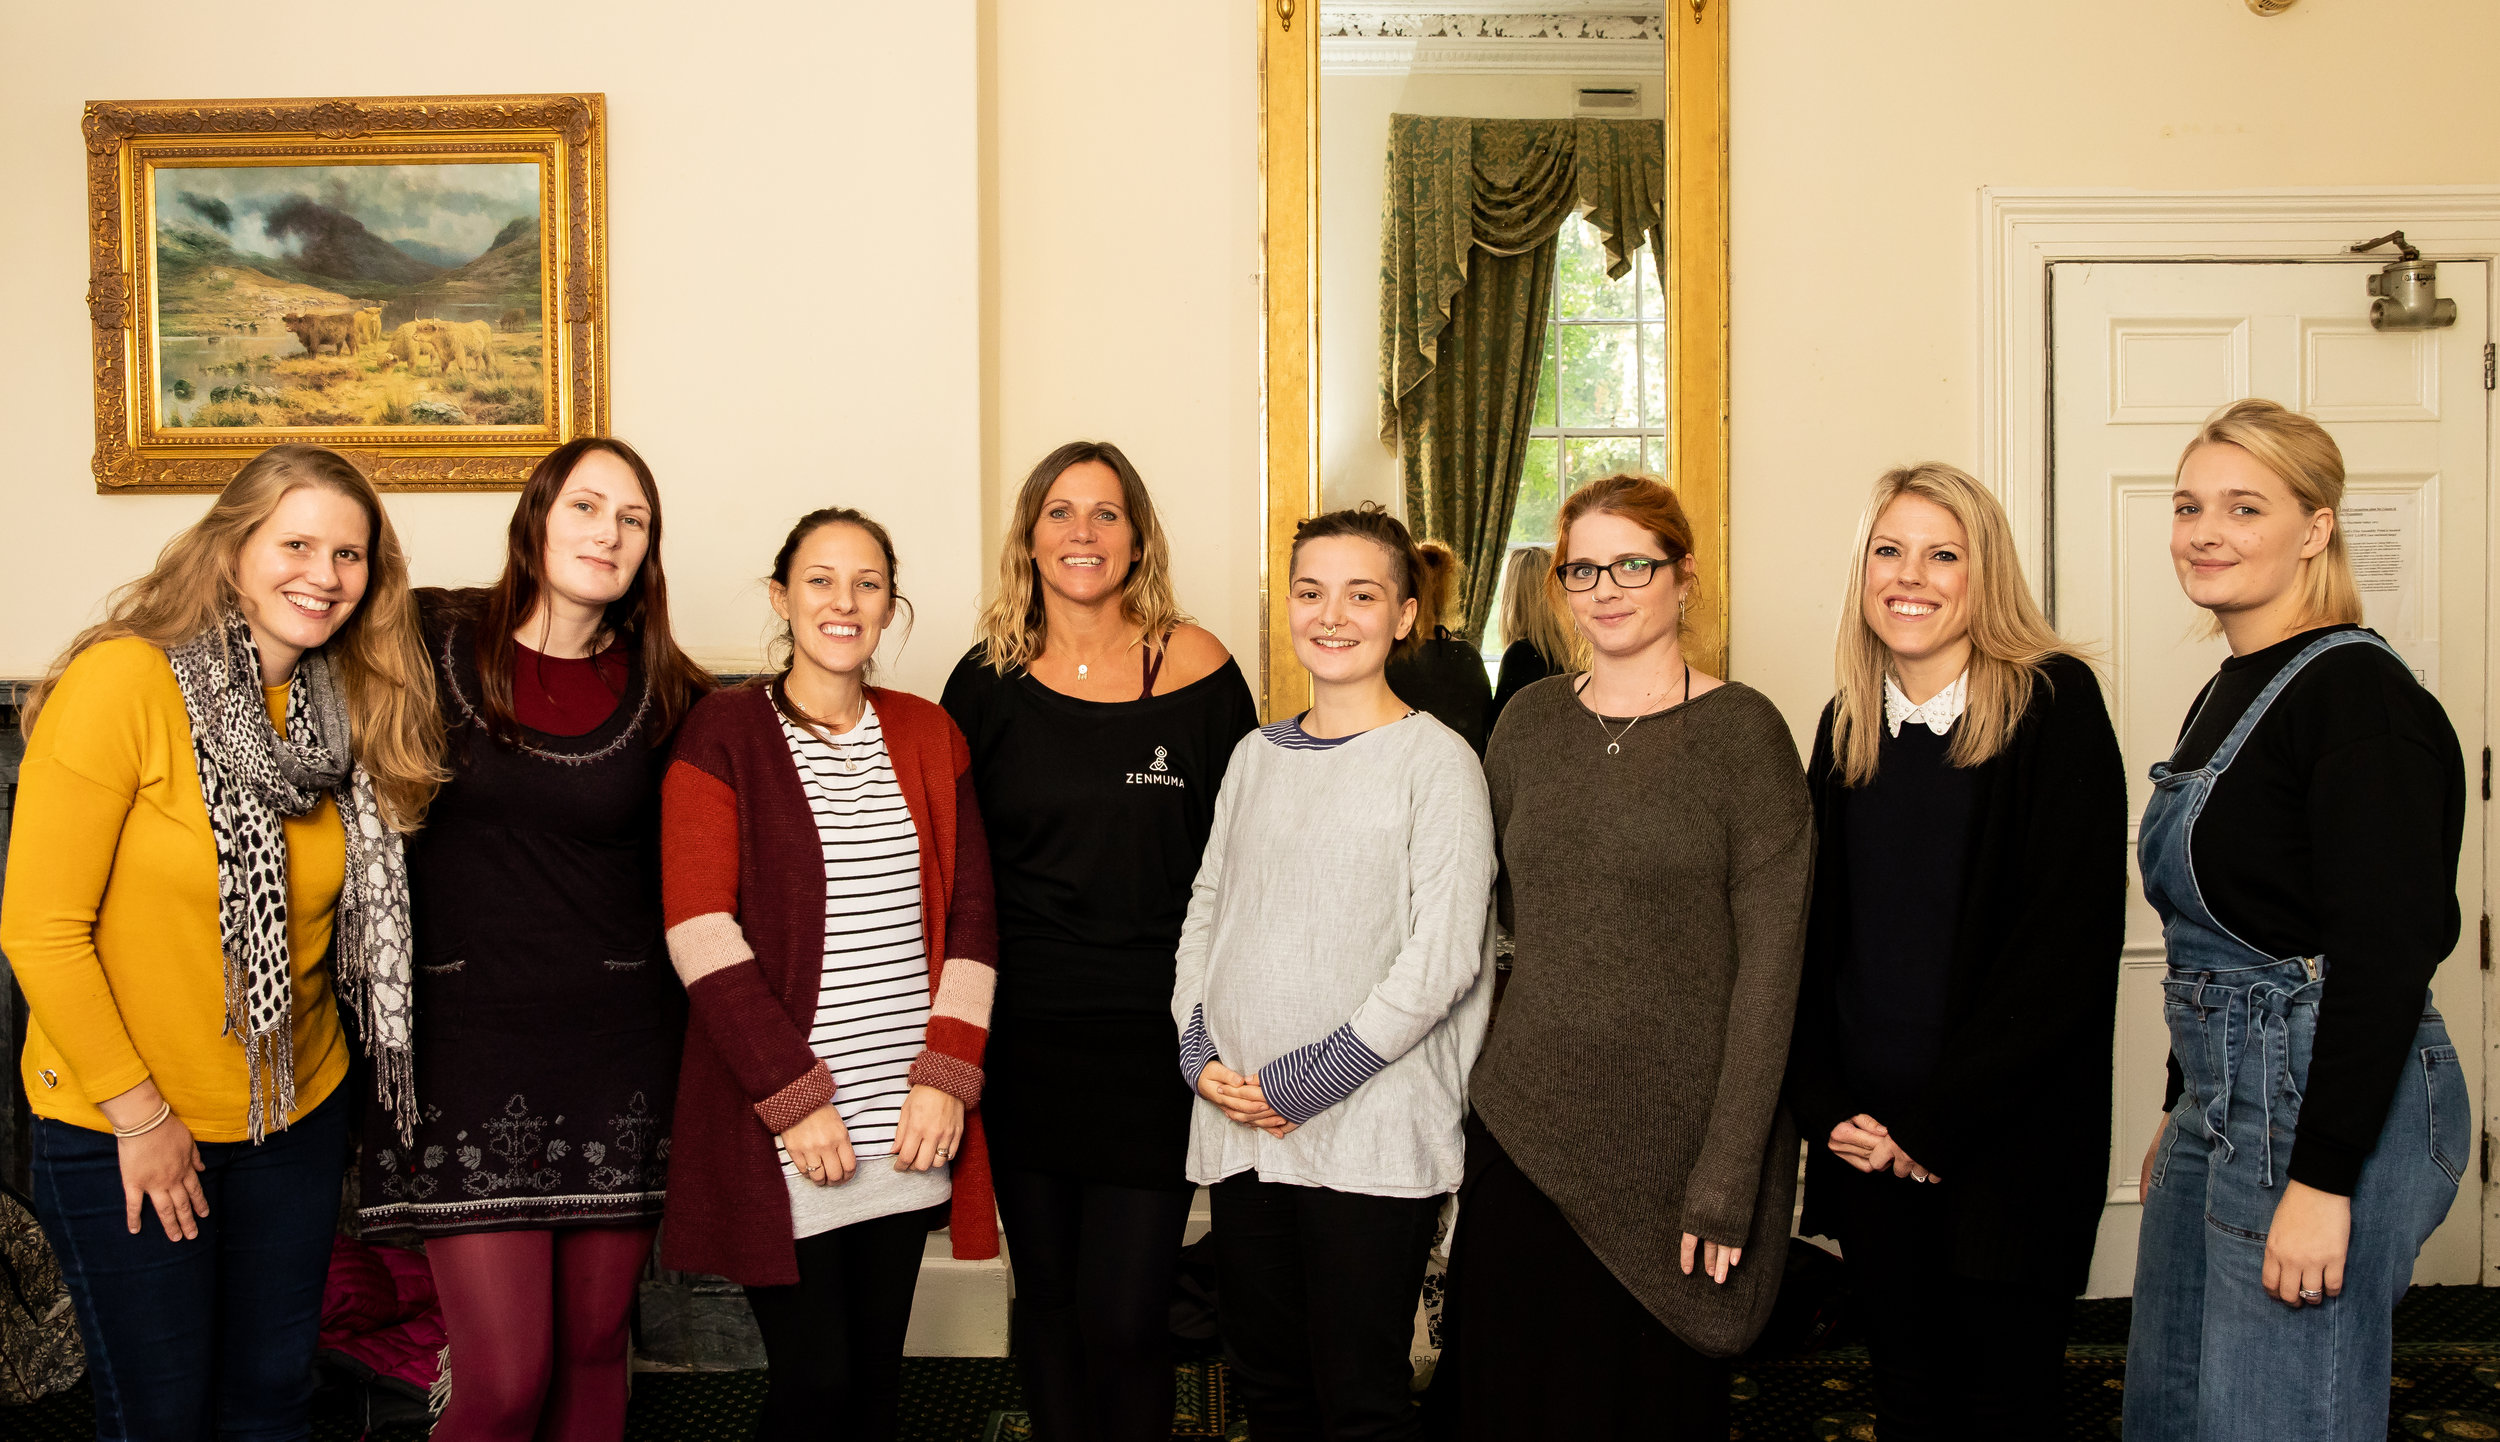 train with us! - Train to become a hypnobirthing instructor and help women in your local area have calmer, more relaxed pregnancies and births. We will teach you how to empower birthing women through tools and techniques such as affirmation, visualisation, breath and active labour movements and massage for labour.